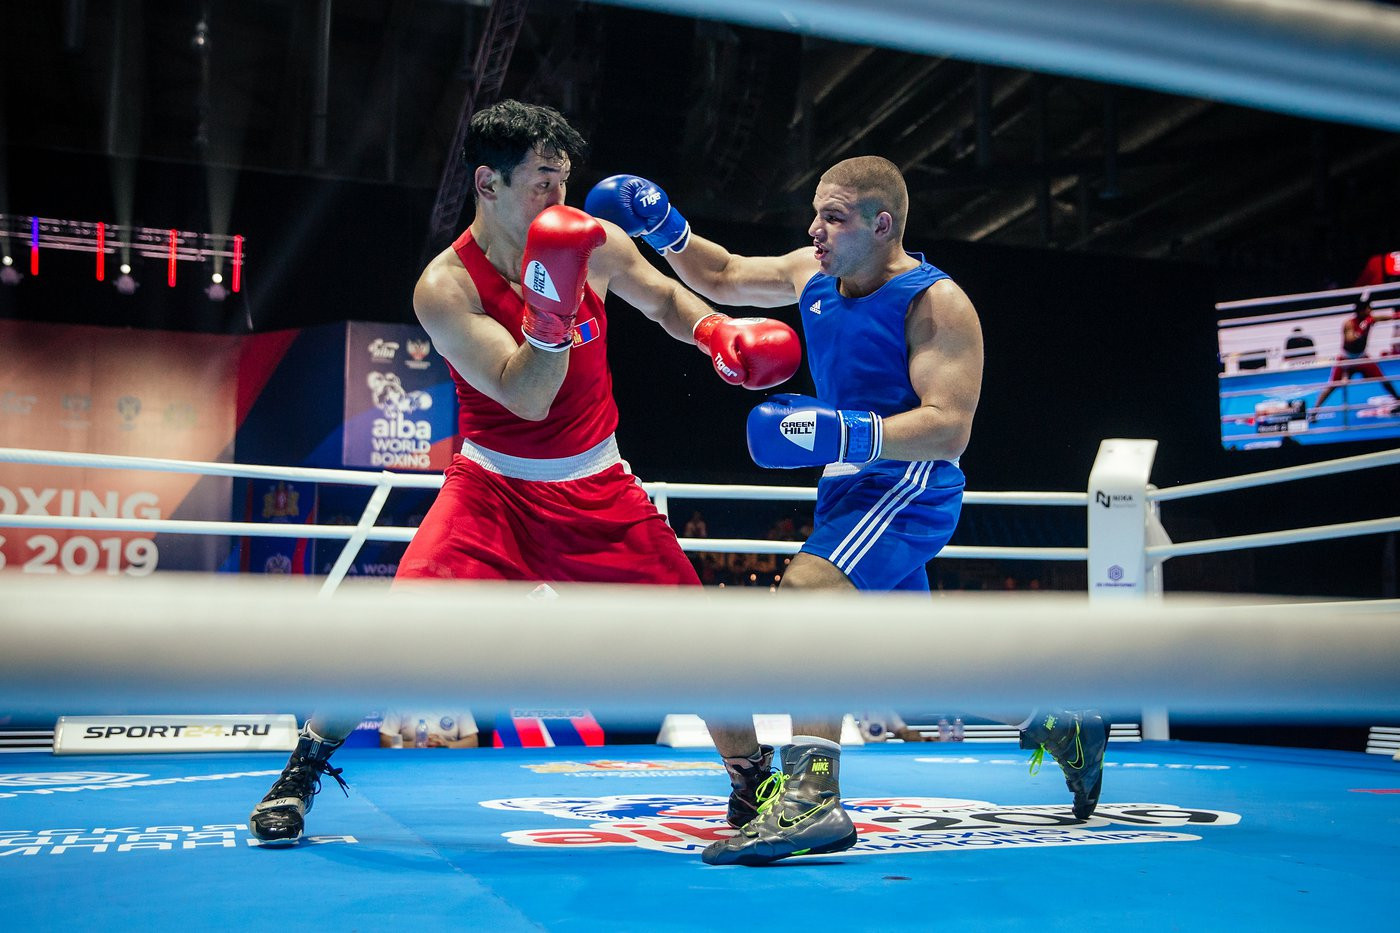 AIBA Men's World Championships 2019: Day three of competition